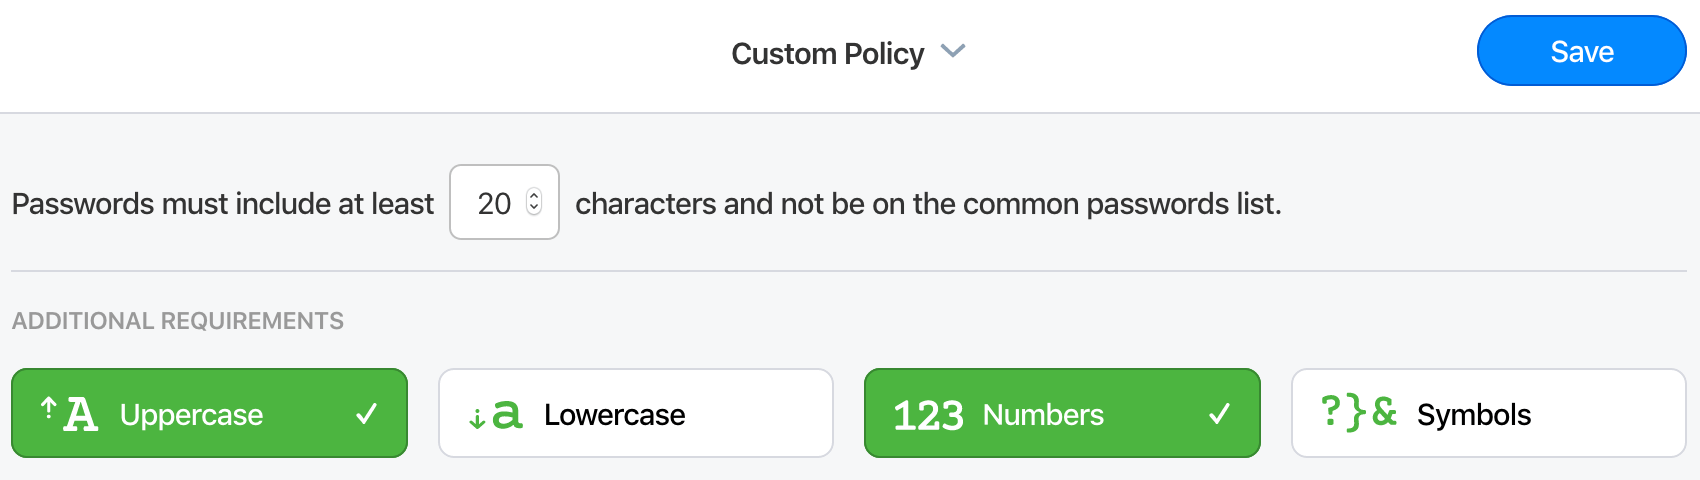 A custom Master Password policy with an adjustable minimum length and the option to require upper and lowercase letters, numbers, or symbols.